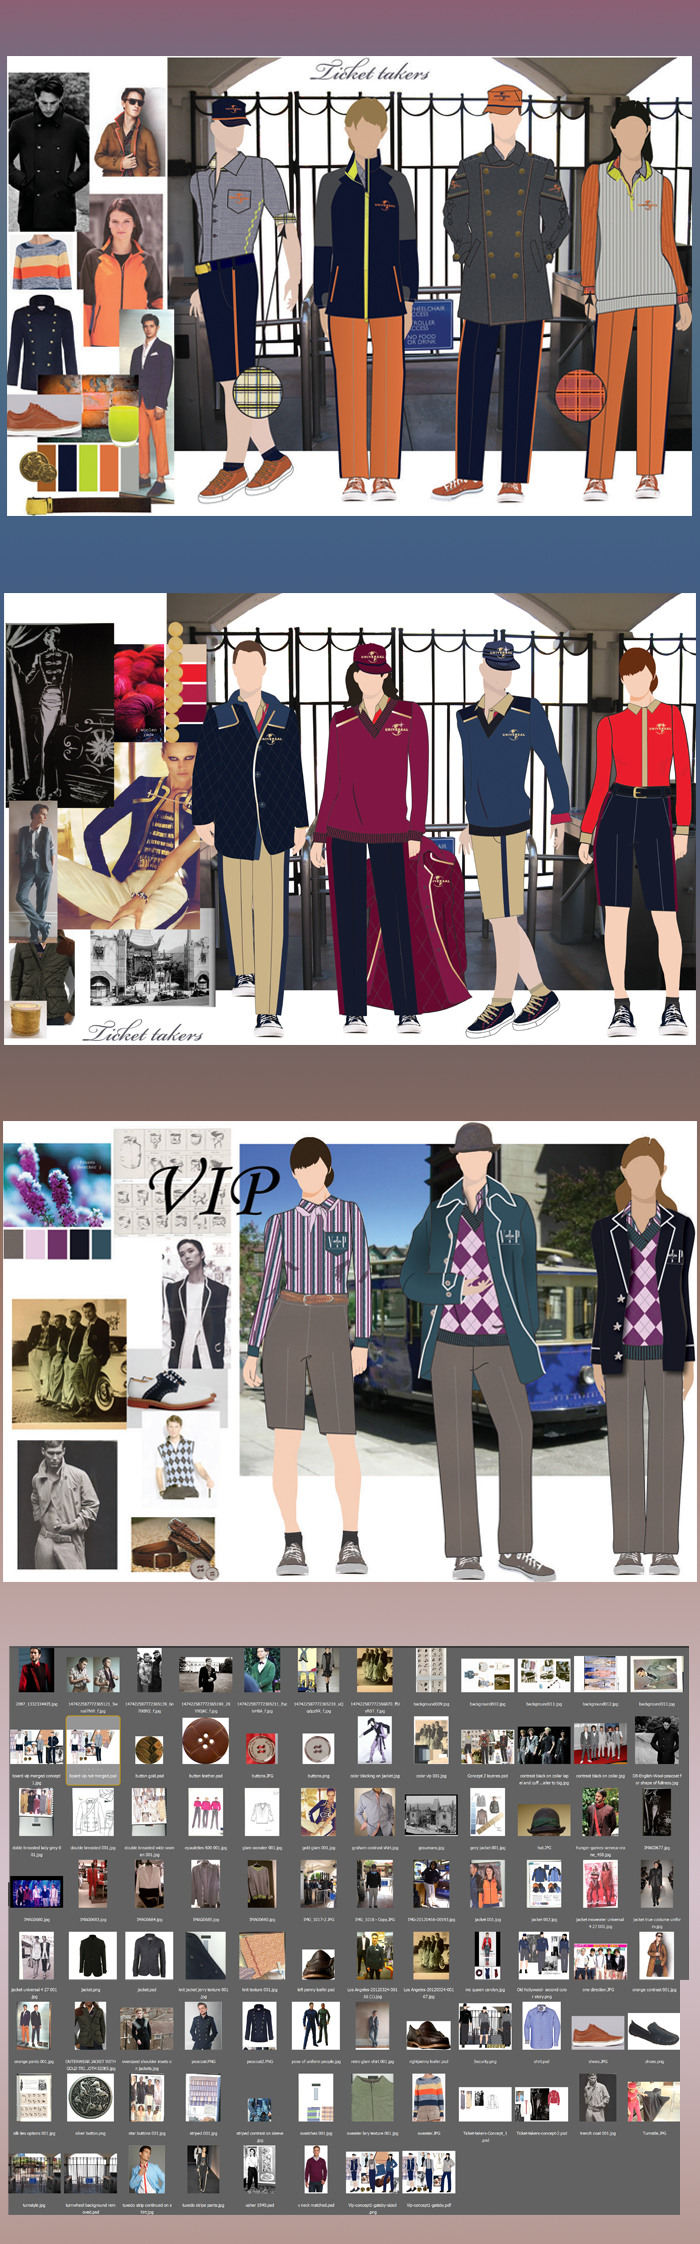 universal-studios-uniform-fashion-illustration